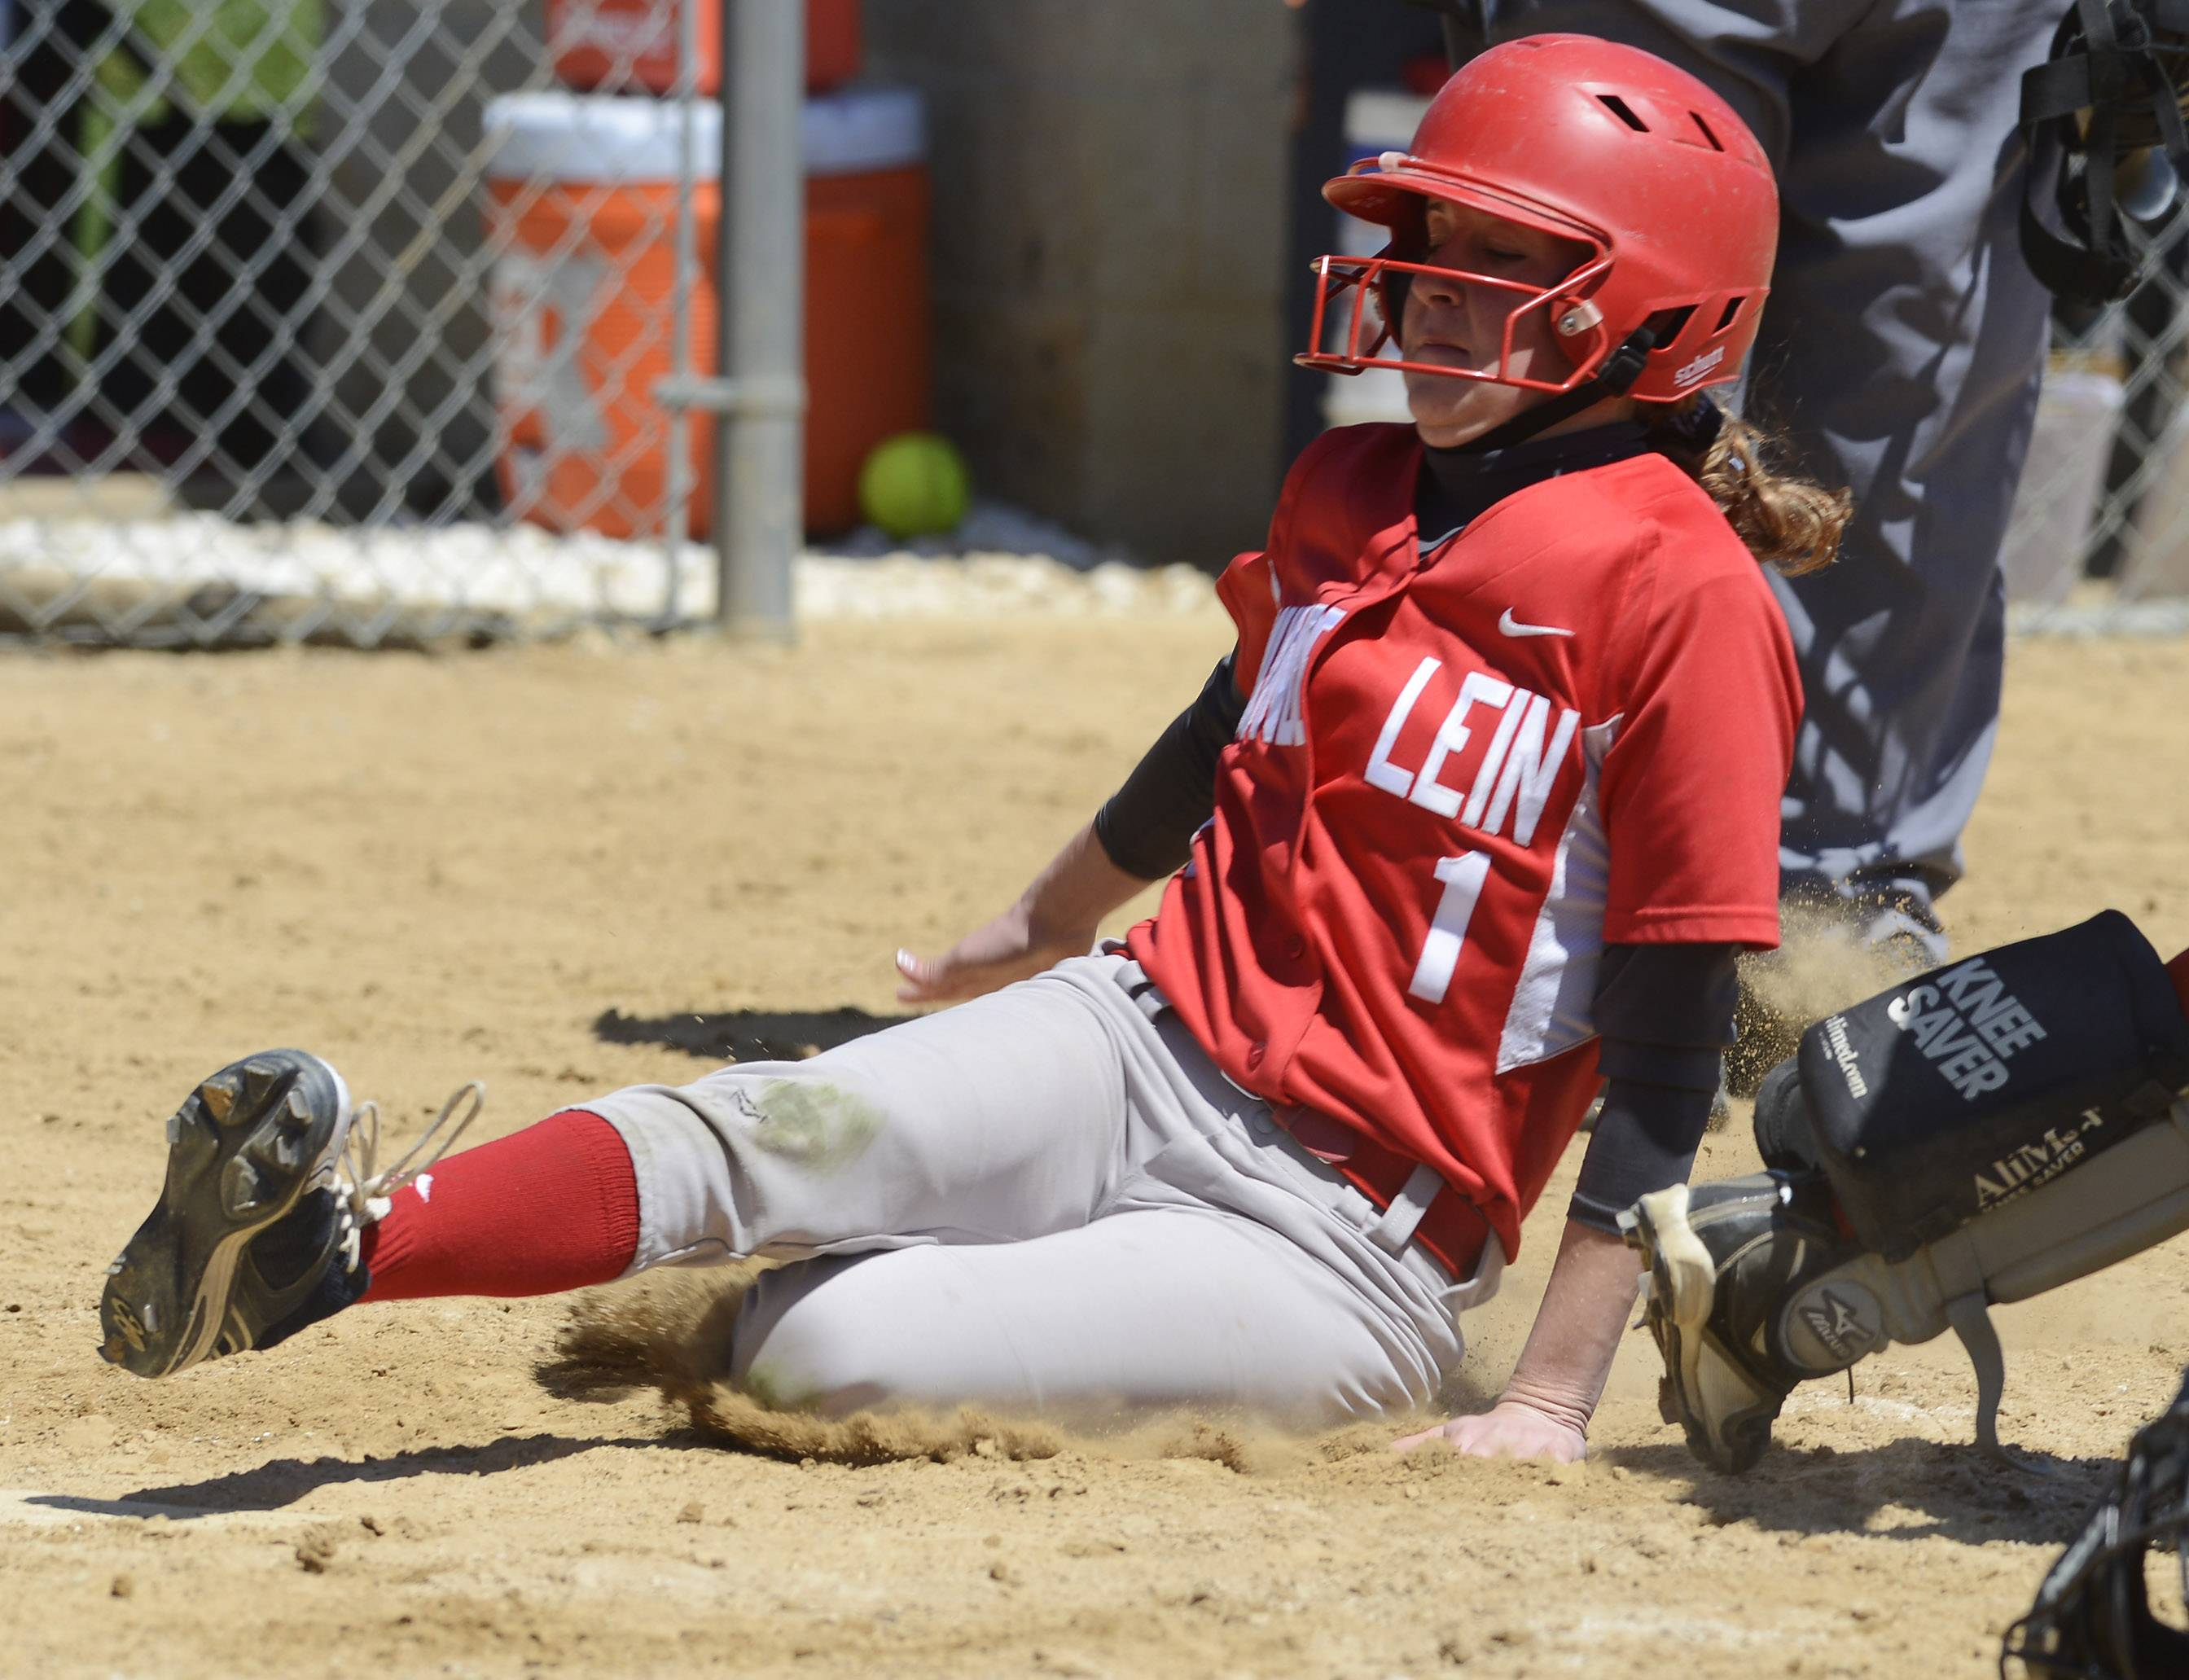 Mundelein's Danielle Beelow scores the go-ahead run during Saturday's game against Hersey,